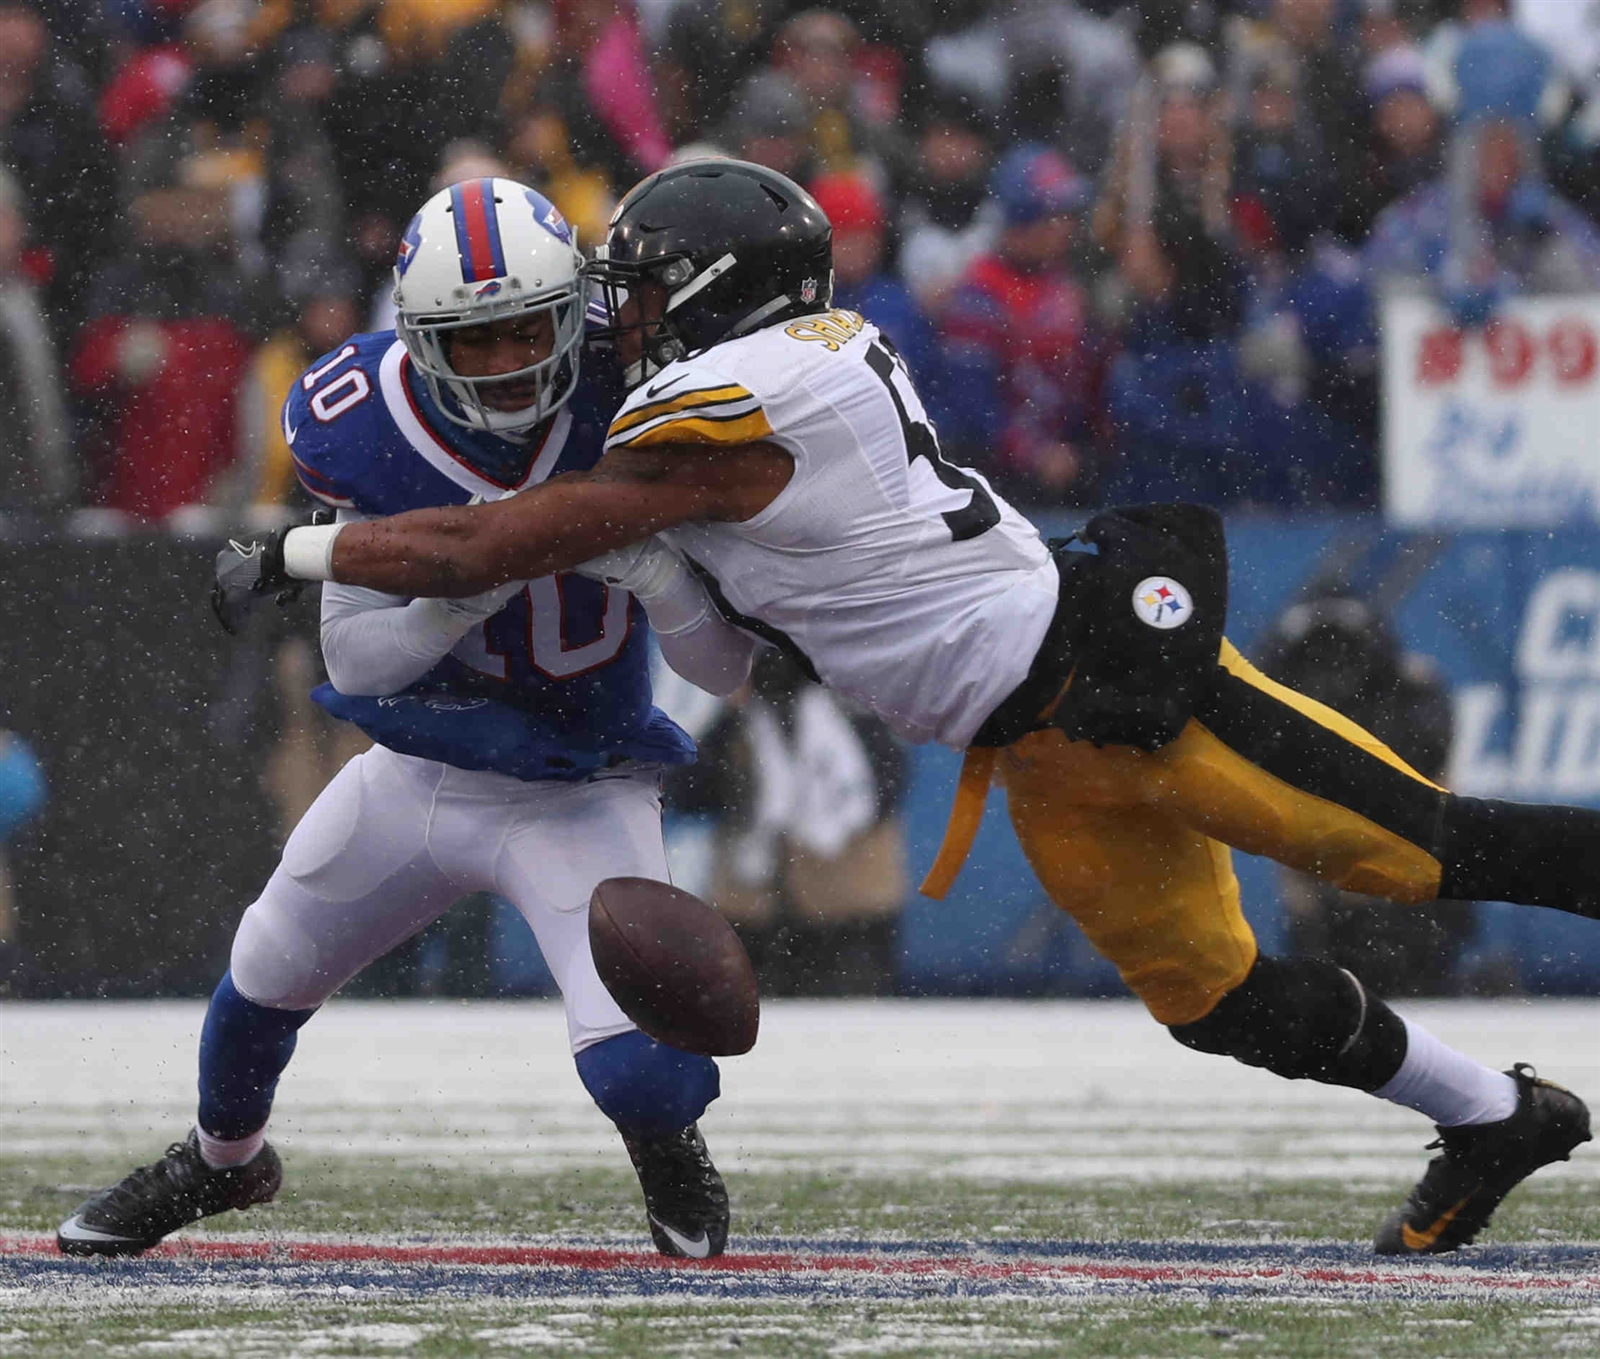 Buffalo Bills wide receiver Robert Woods (10) can't secure the ball while taking a hit from Pittsburgh Steelers inside linebacker Ryan Shazier. (James P. McCoy/Buffalo News)